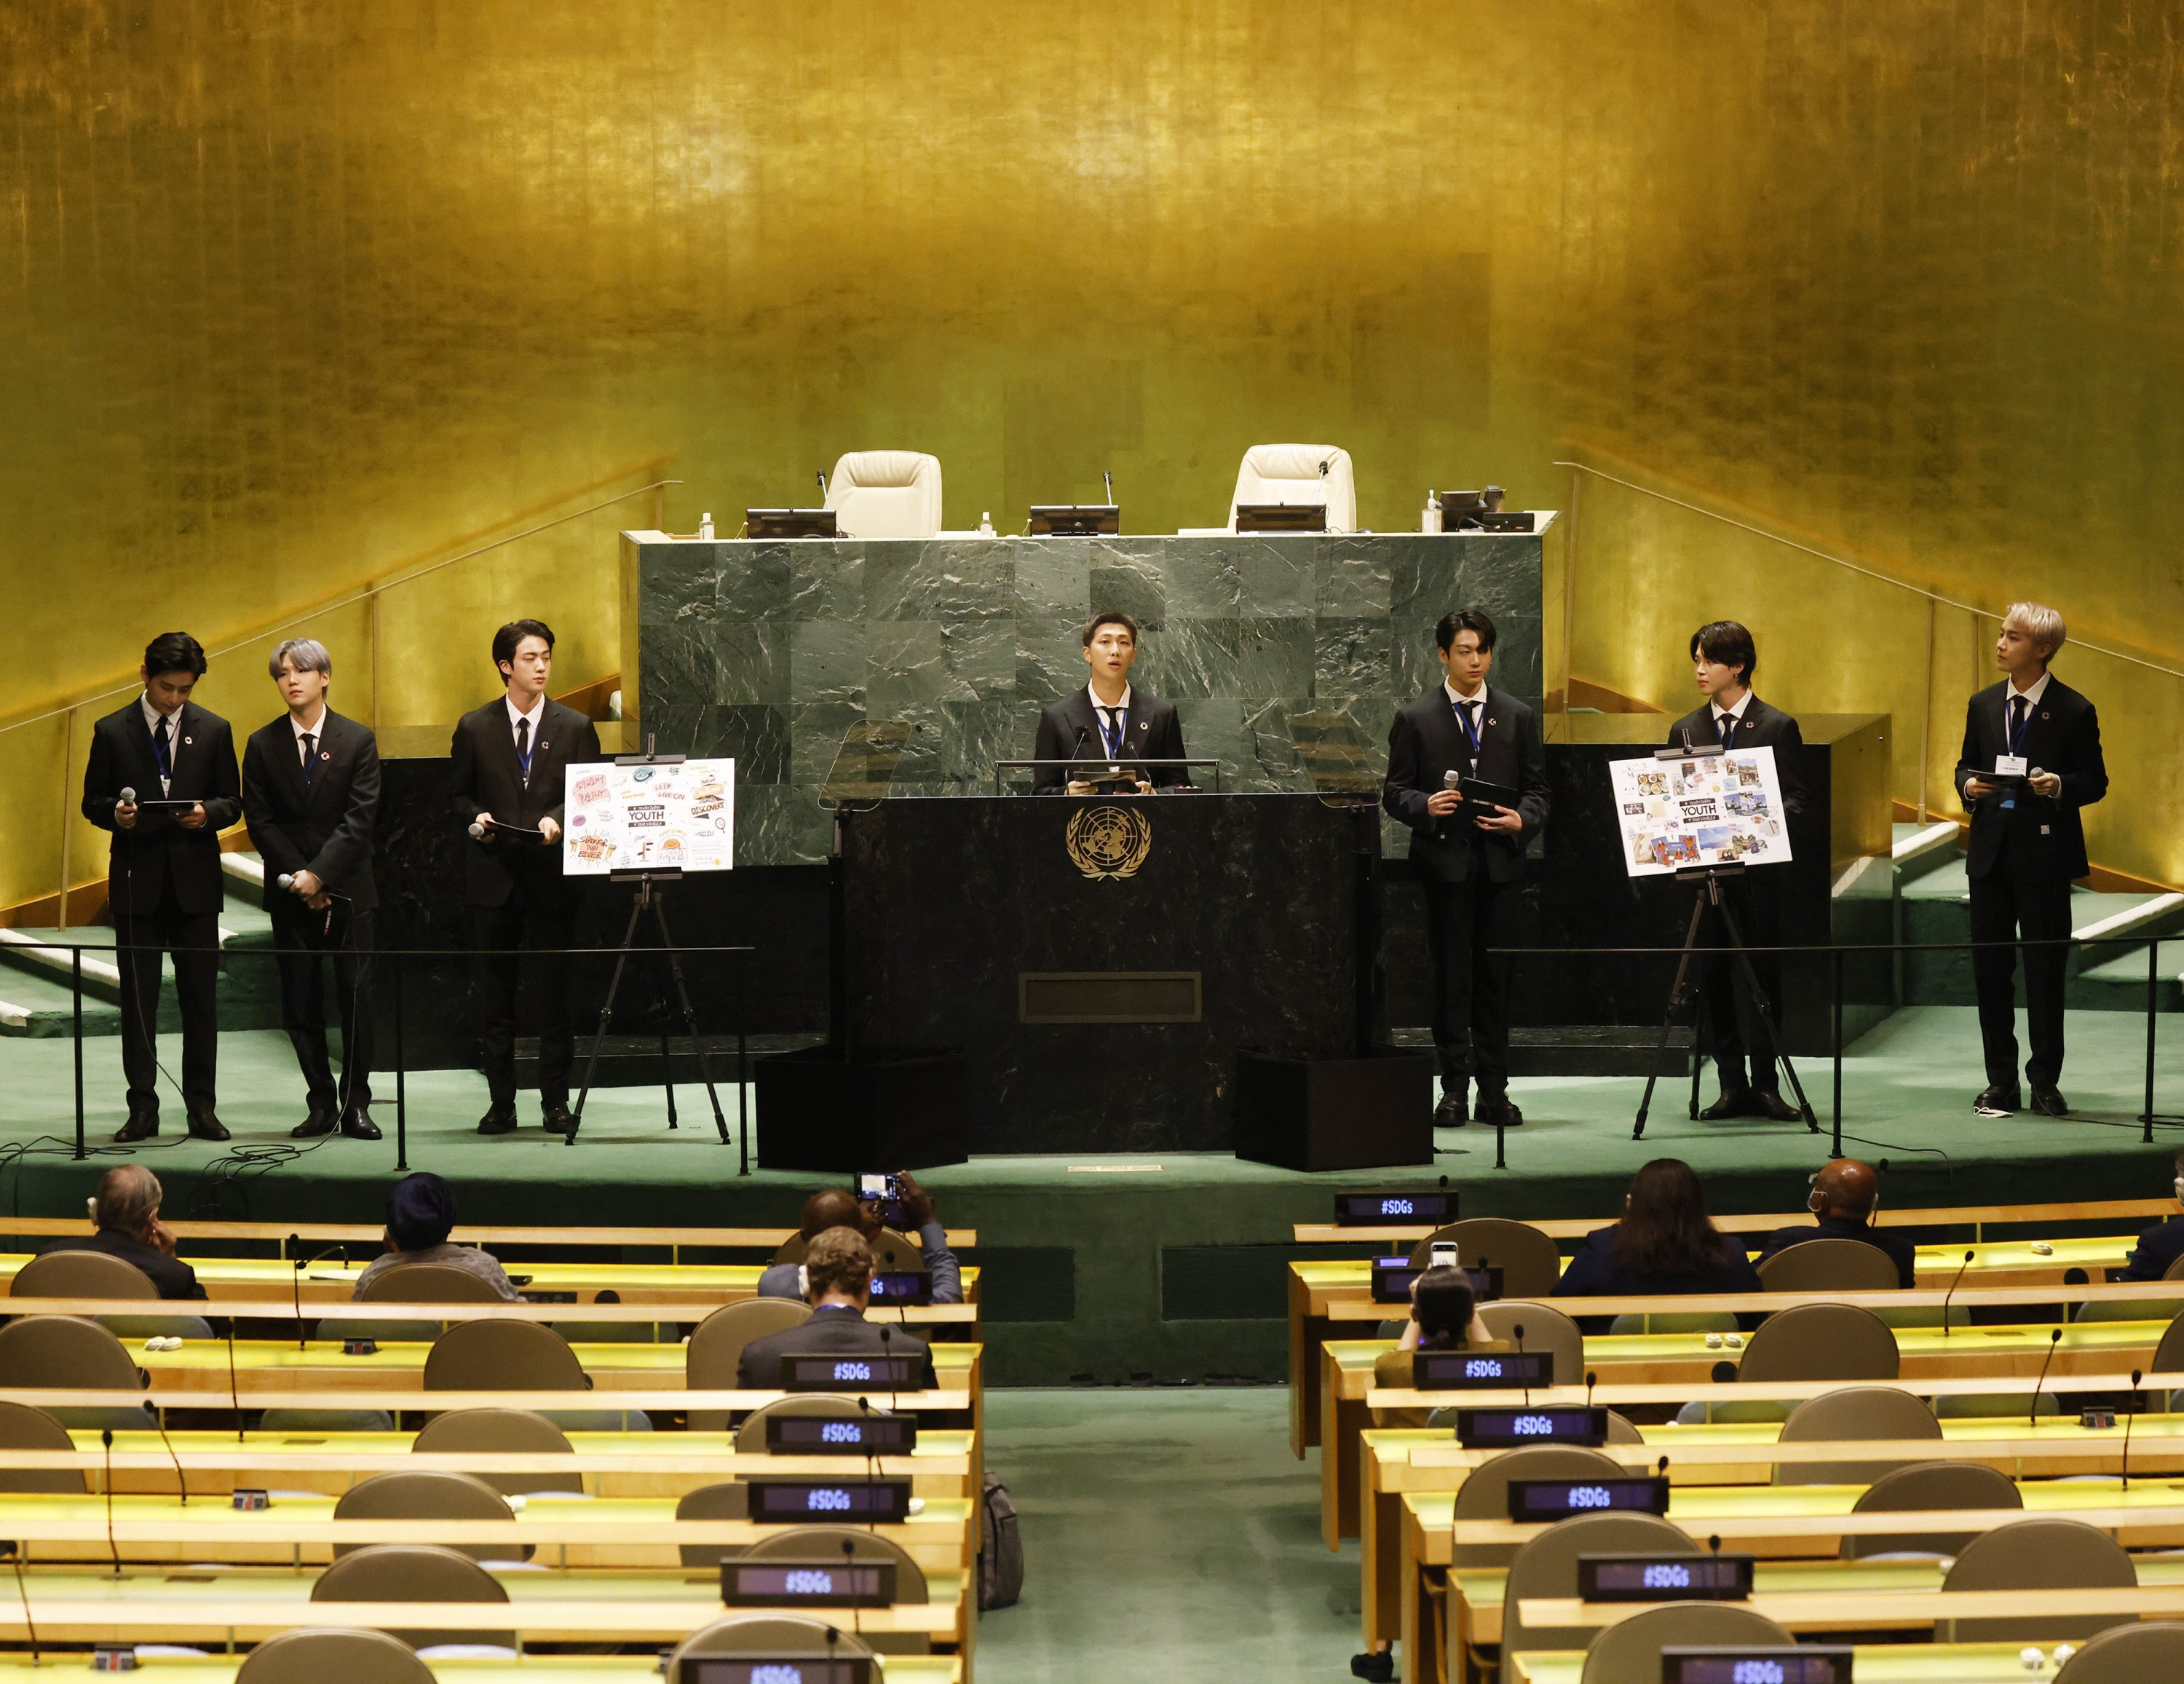 Members of the South Korean K-pop band BTS appear at the Sustainable Development Goals meeting during the 76th session of the United Nations General Assembly at the U.N. Headquarters on Monday, Sept. 20, 2021. (John Angelillo/Pool Photo via AP)